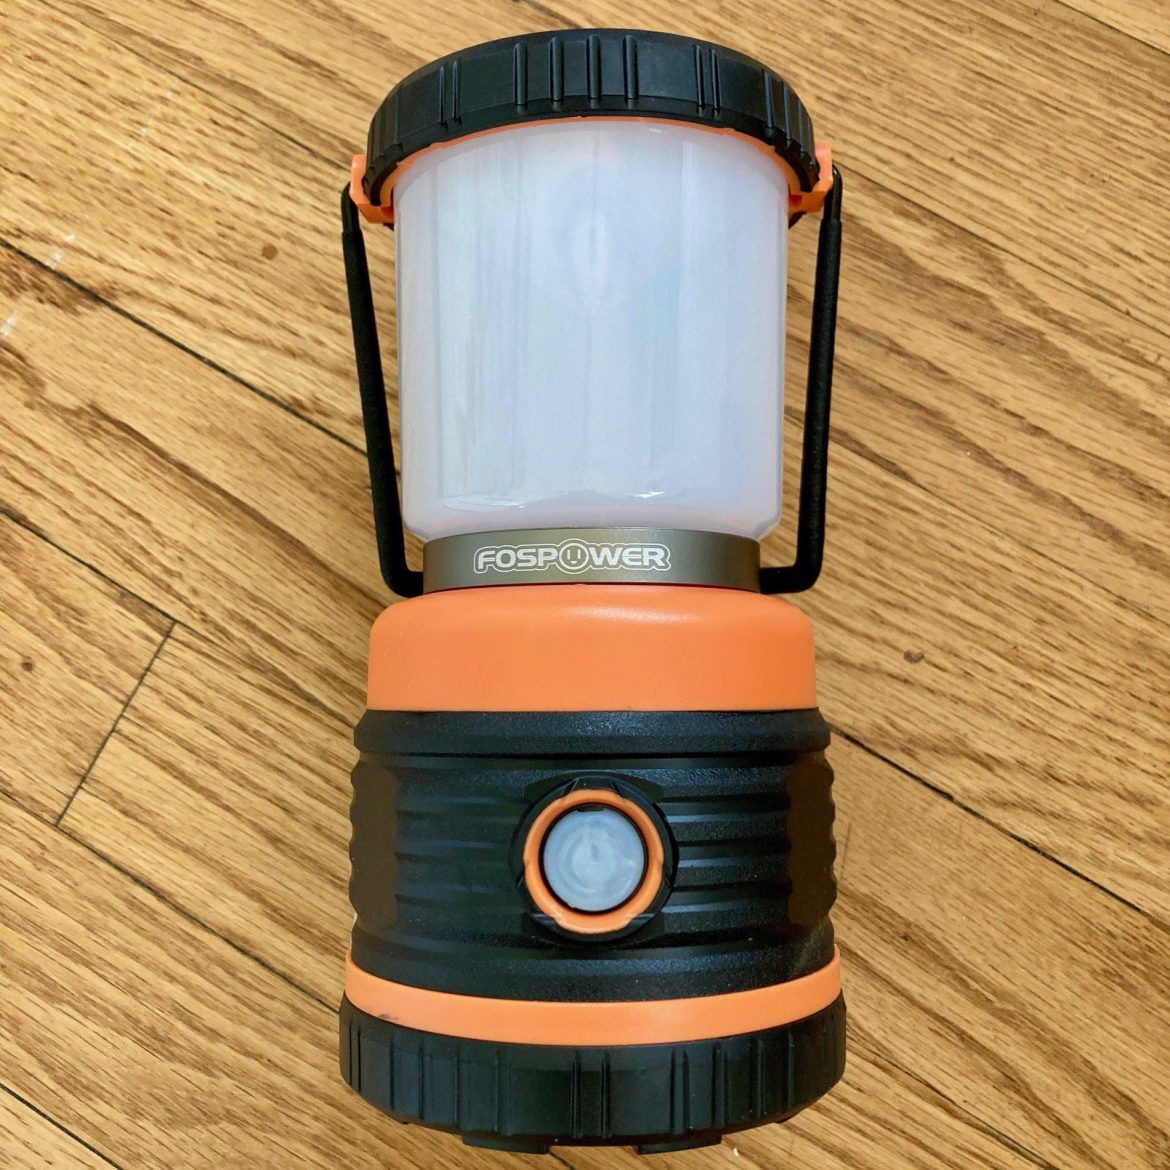 In Review: FosPower Camping Lantern